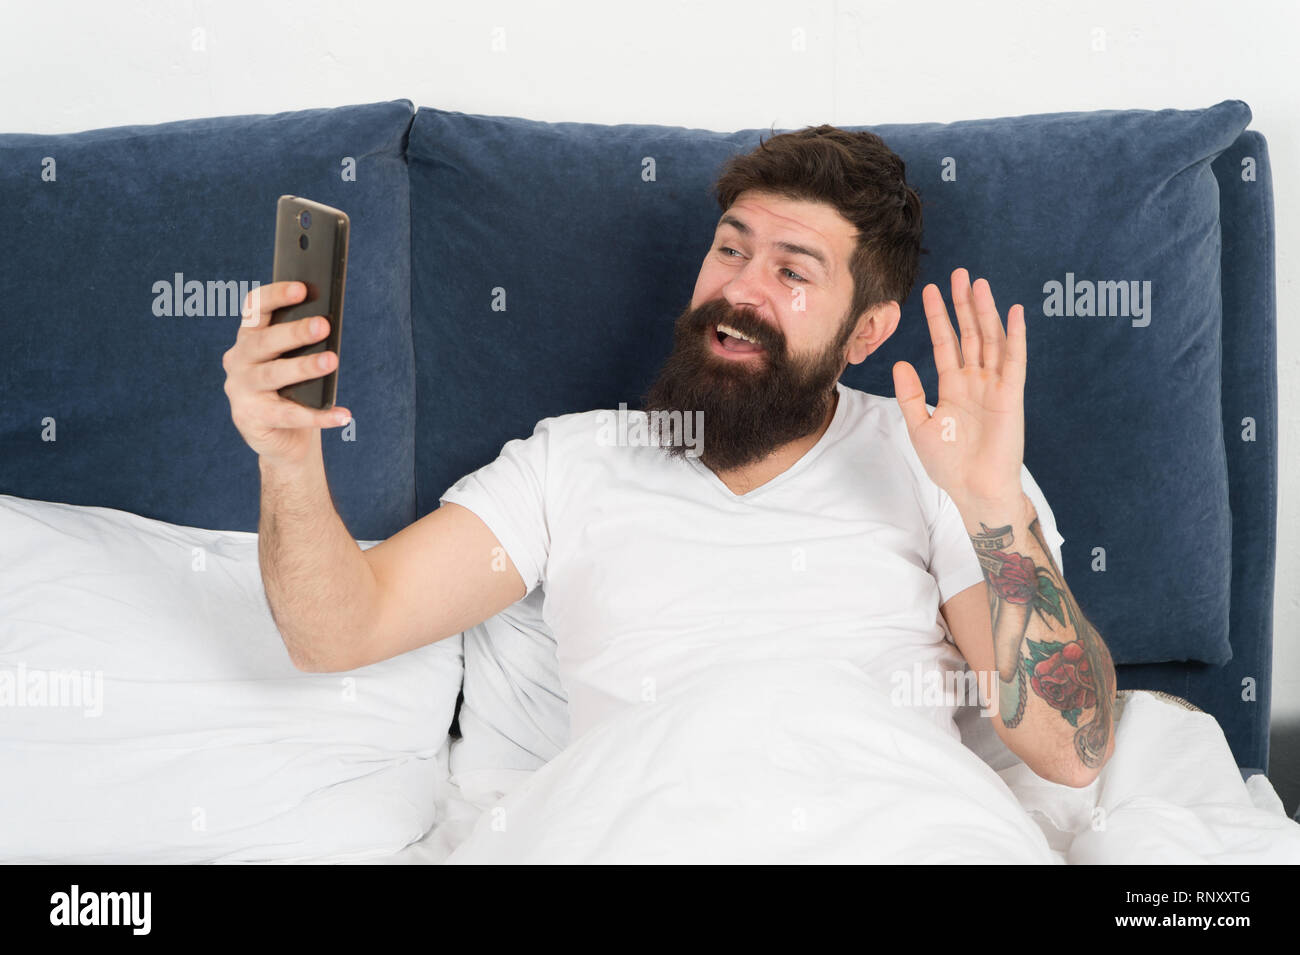 First thing in morning. Man bearded hipster surfing internet social networks. Say hello to friends. Online communication. Mobile dependence. Social networks communication. Digital communication. - Stock Image